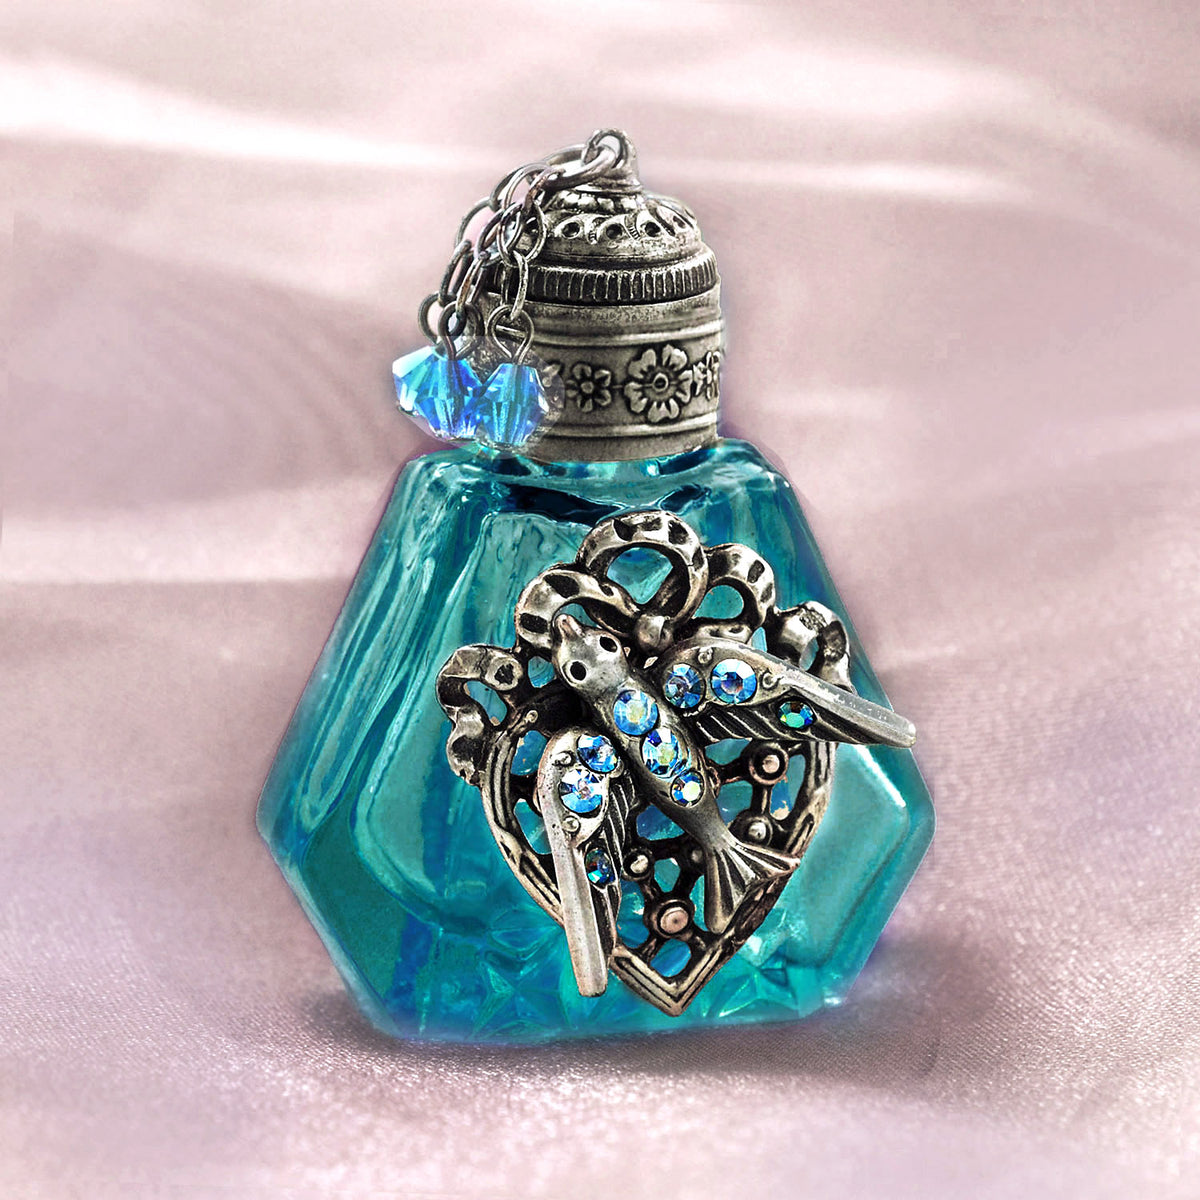 Limited Edition Vintage Mini Perfume Bottle 609